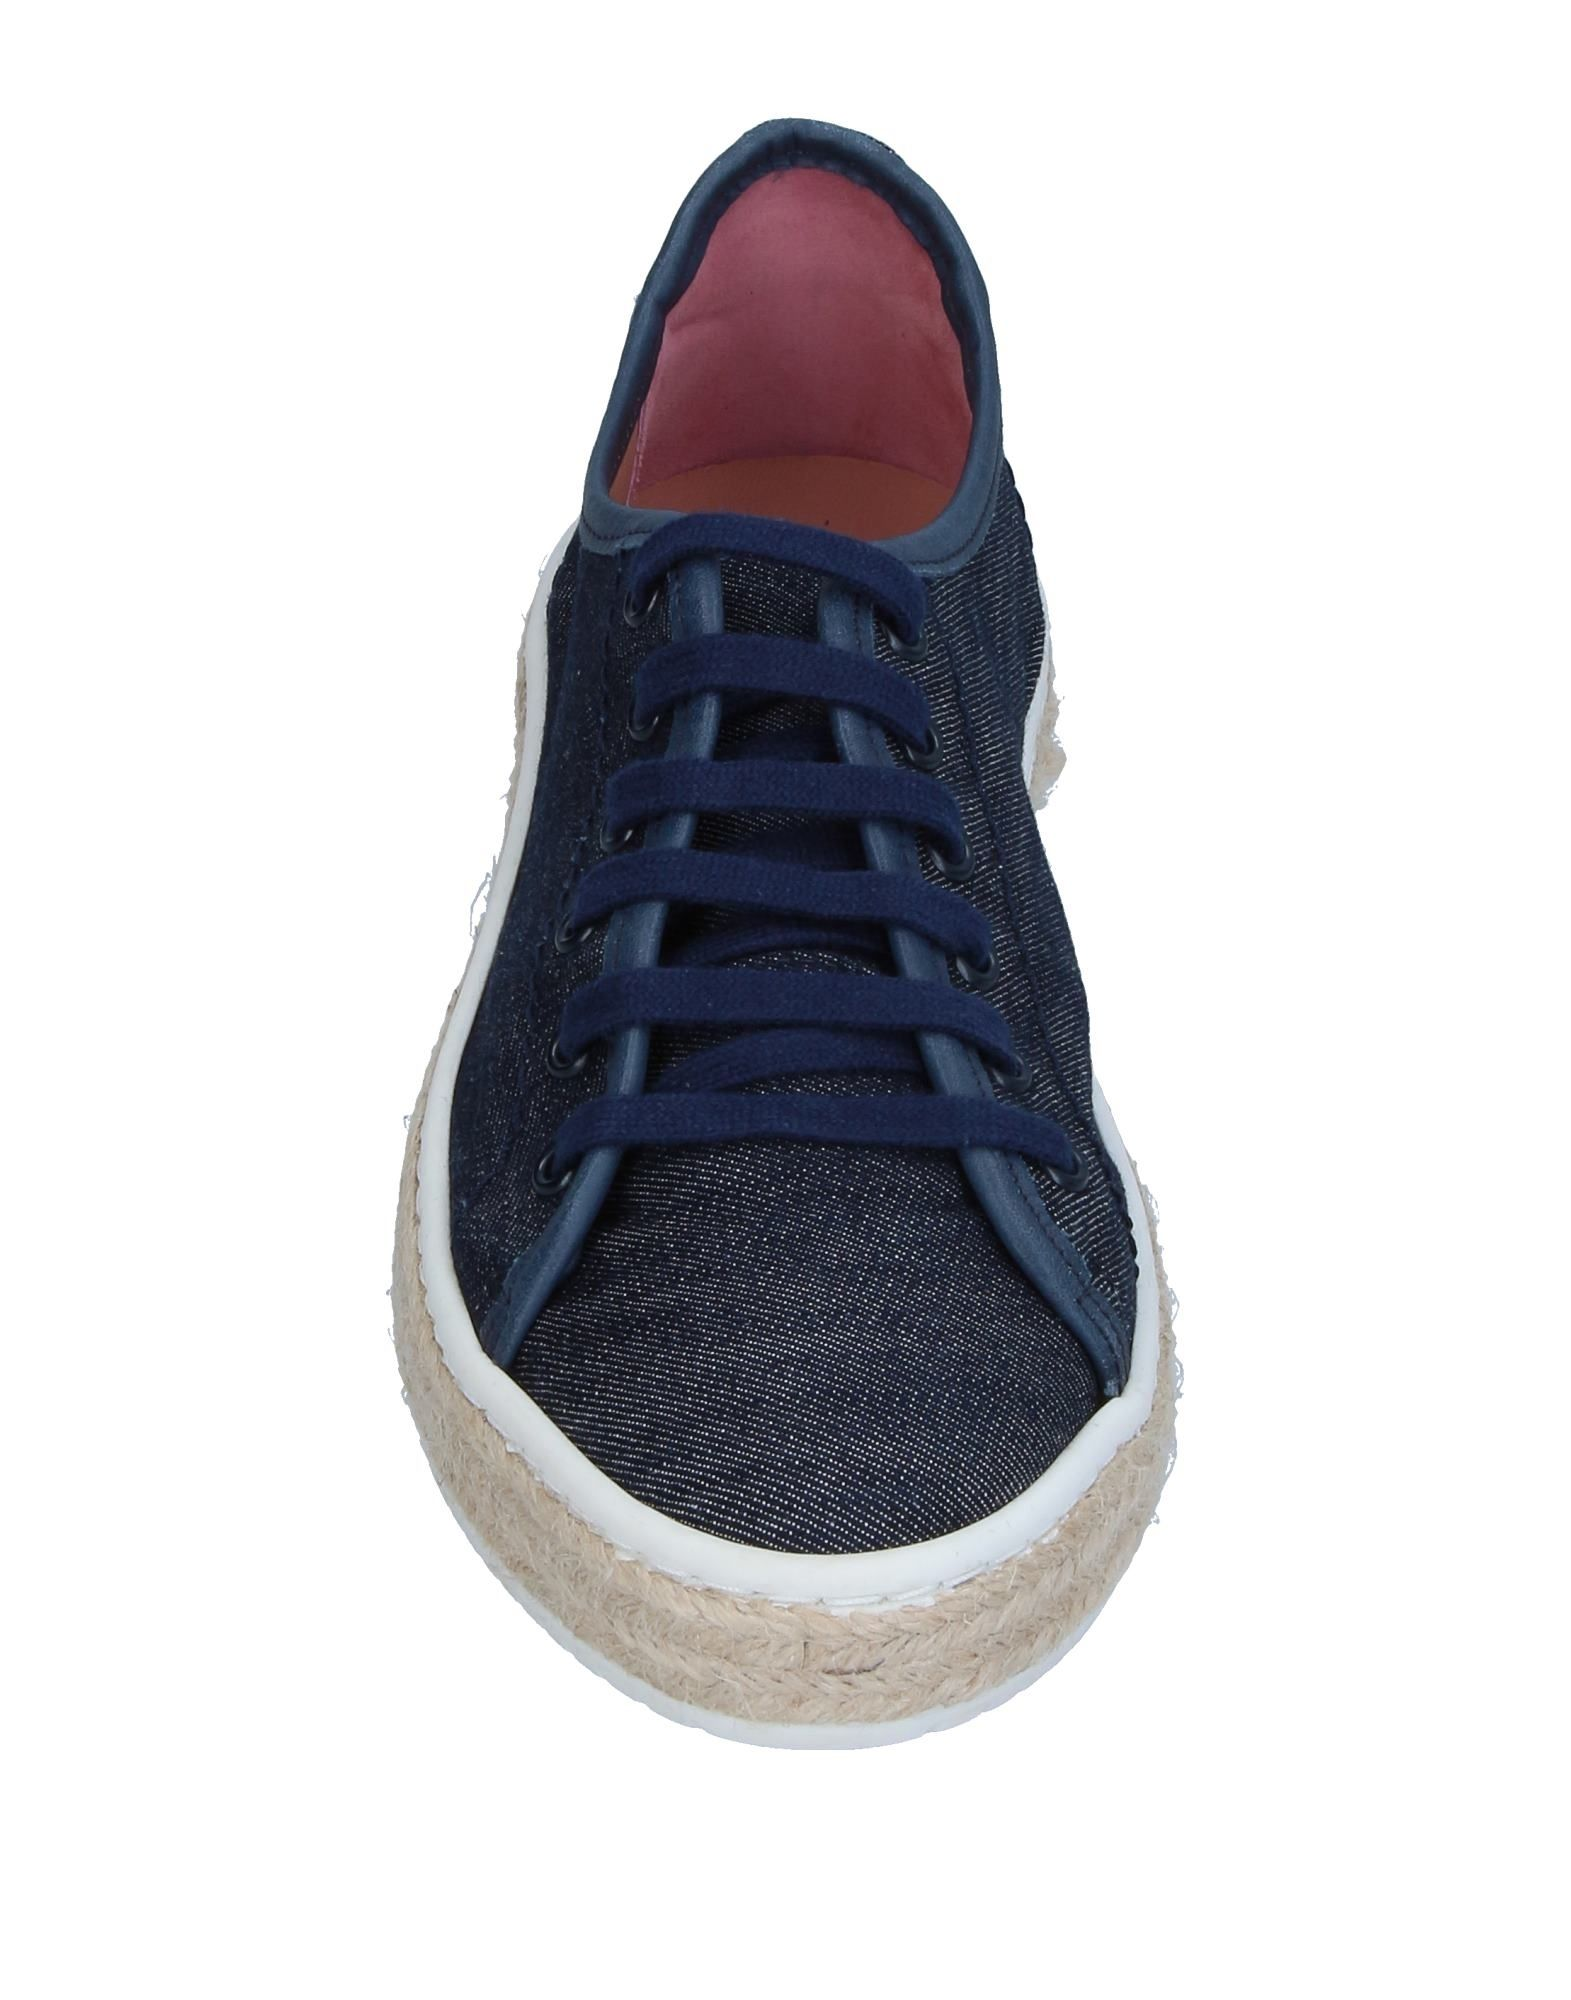 Sneakers Max & Co. Femme - Sneakers Max & Co. sur